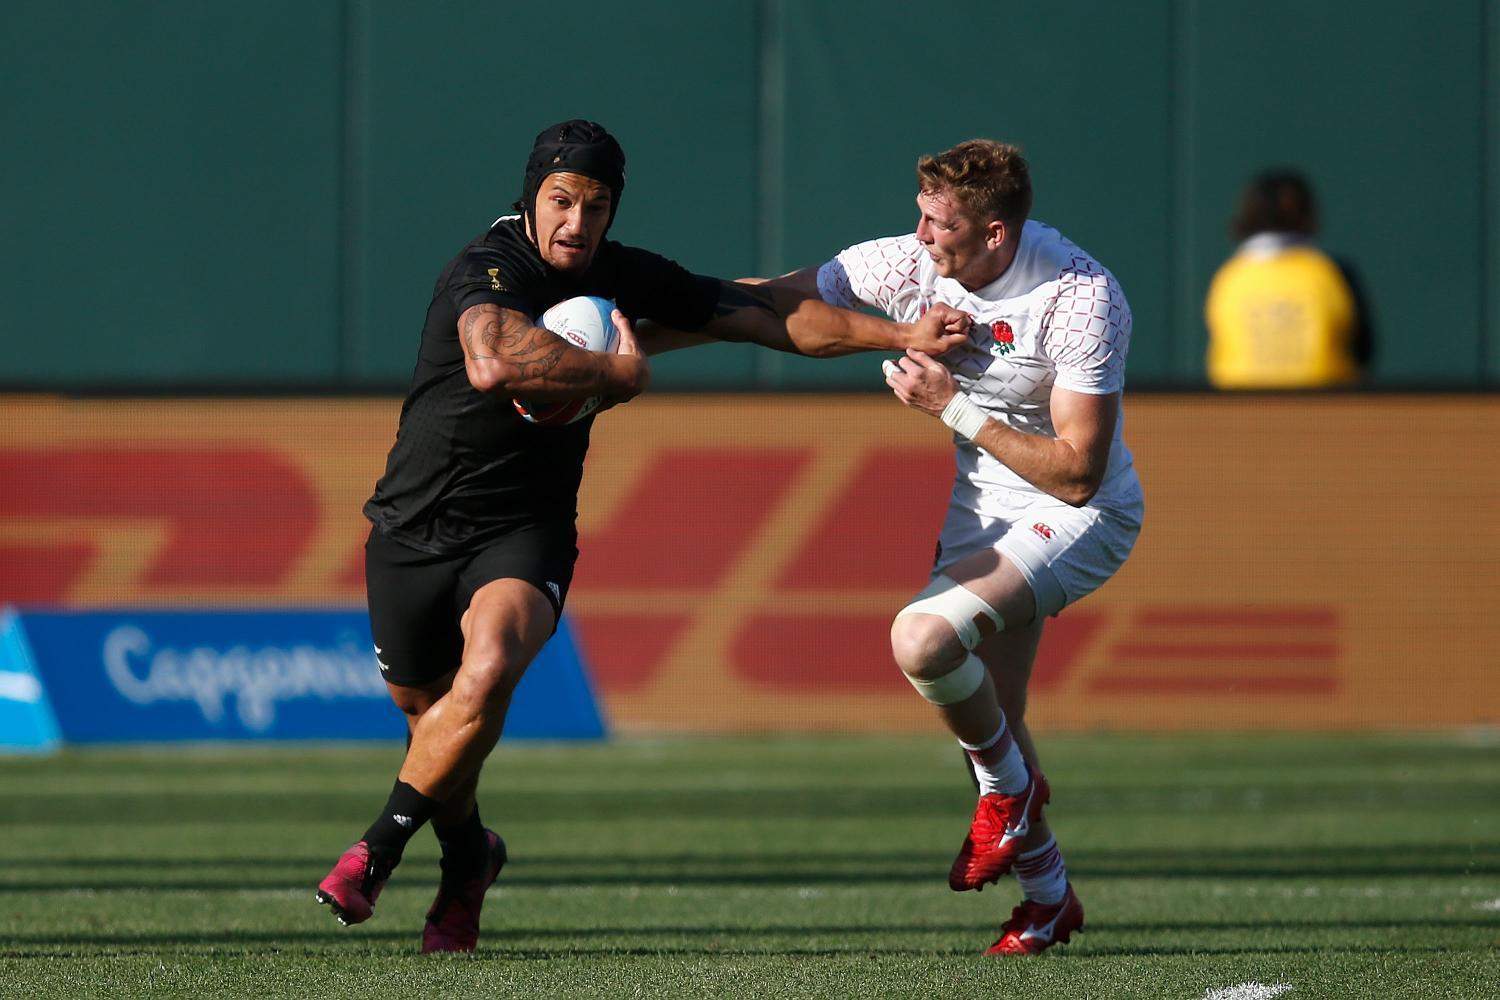 Rugby World Cup Sevens San Francisco 2018 - Day Three